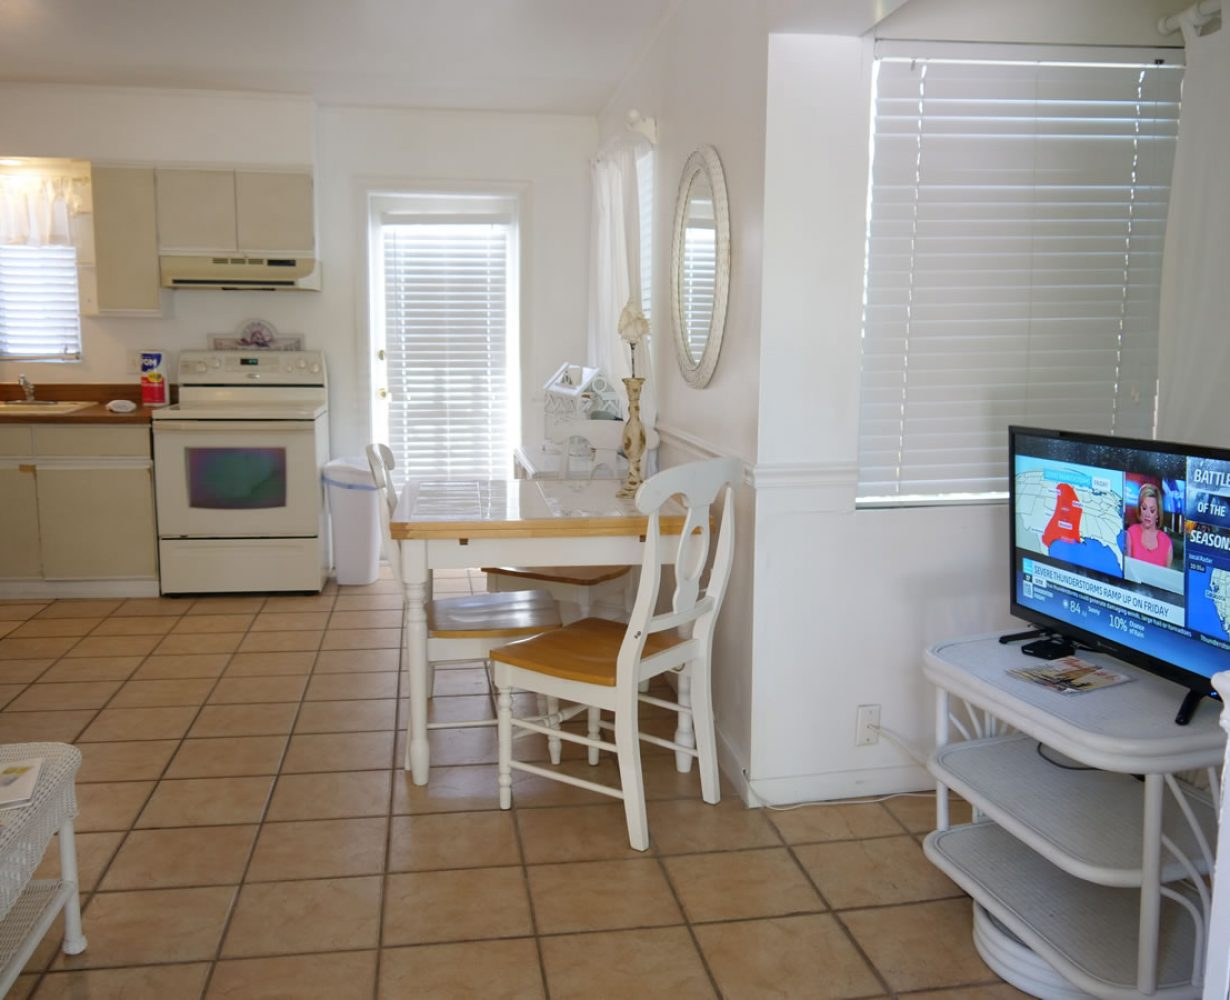 View from t.v. console to dining area, part of the kitchenette and back door